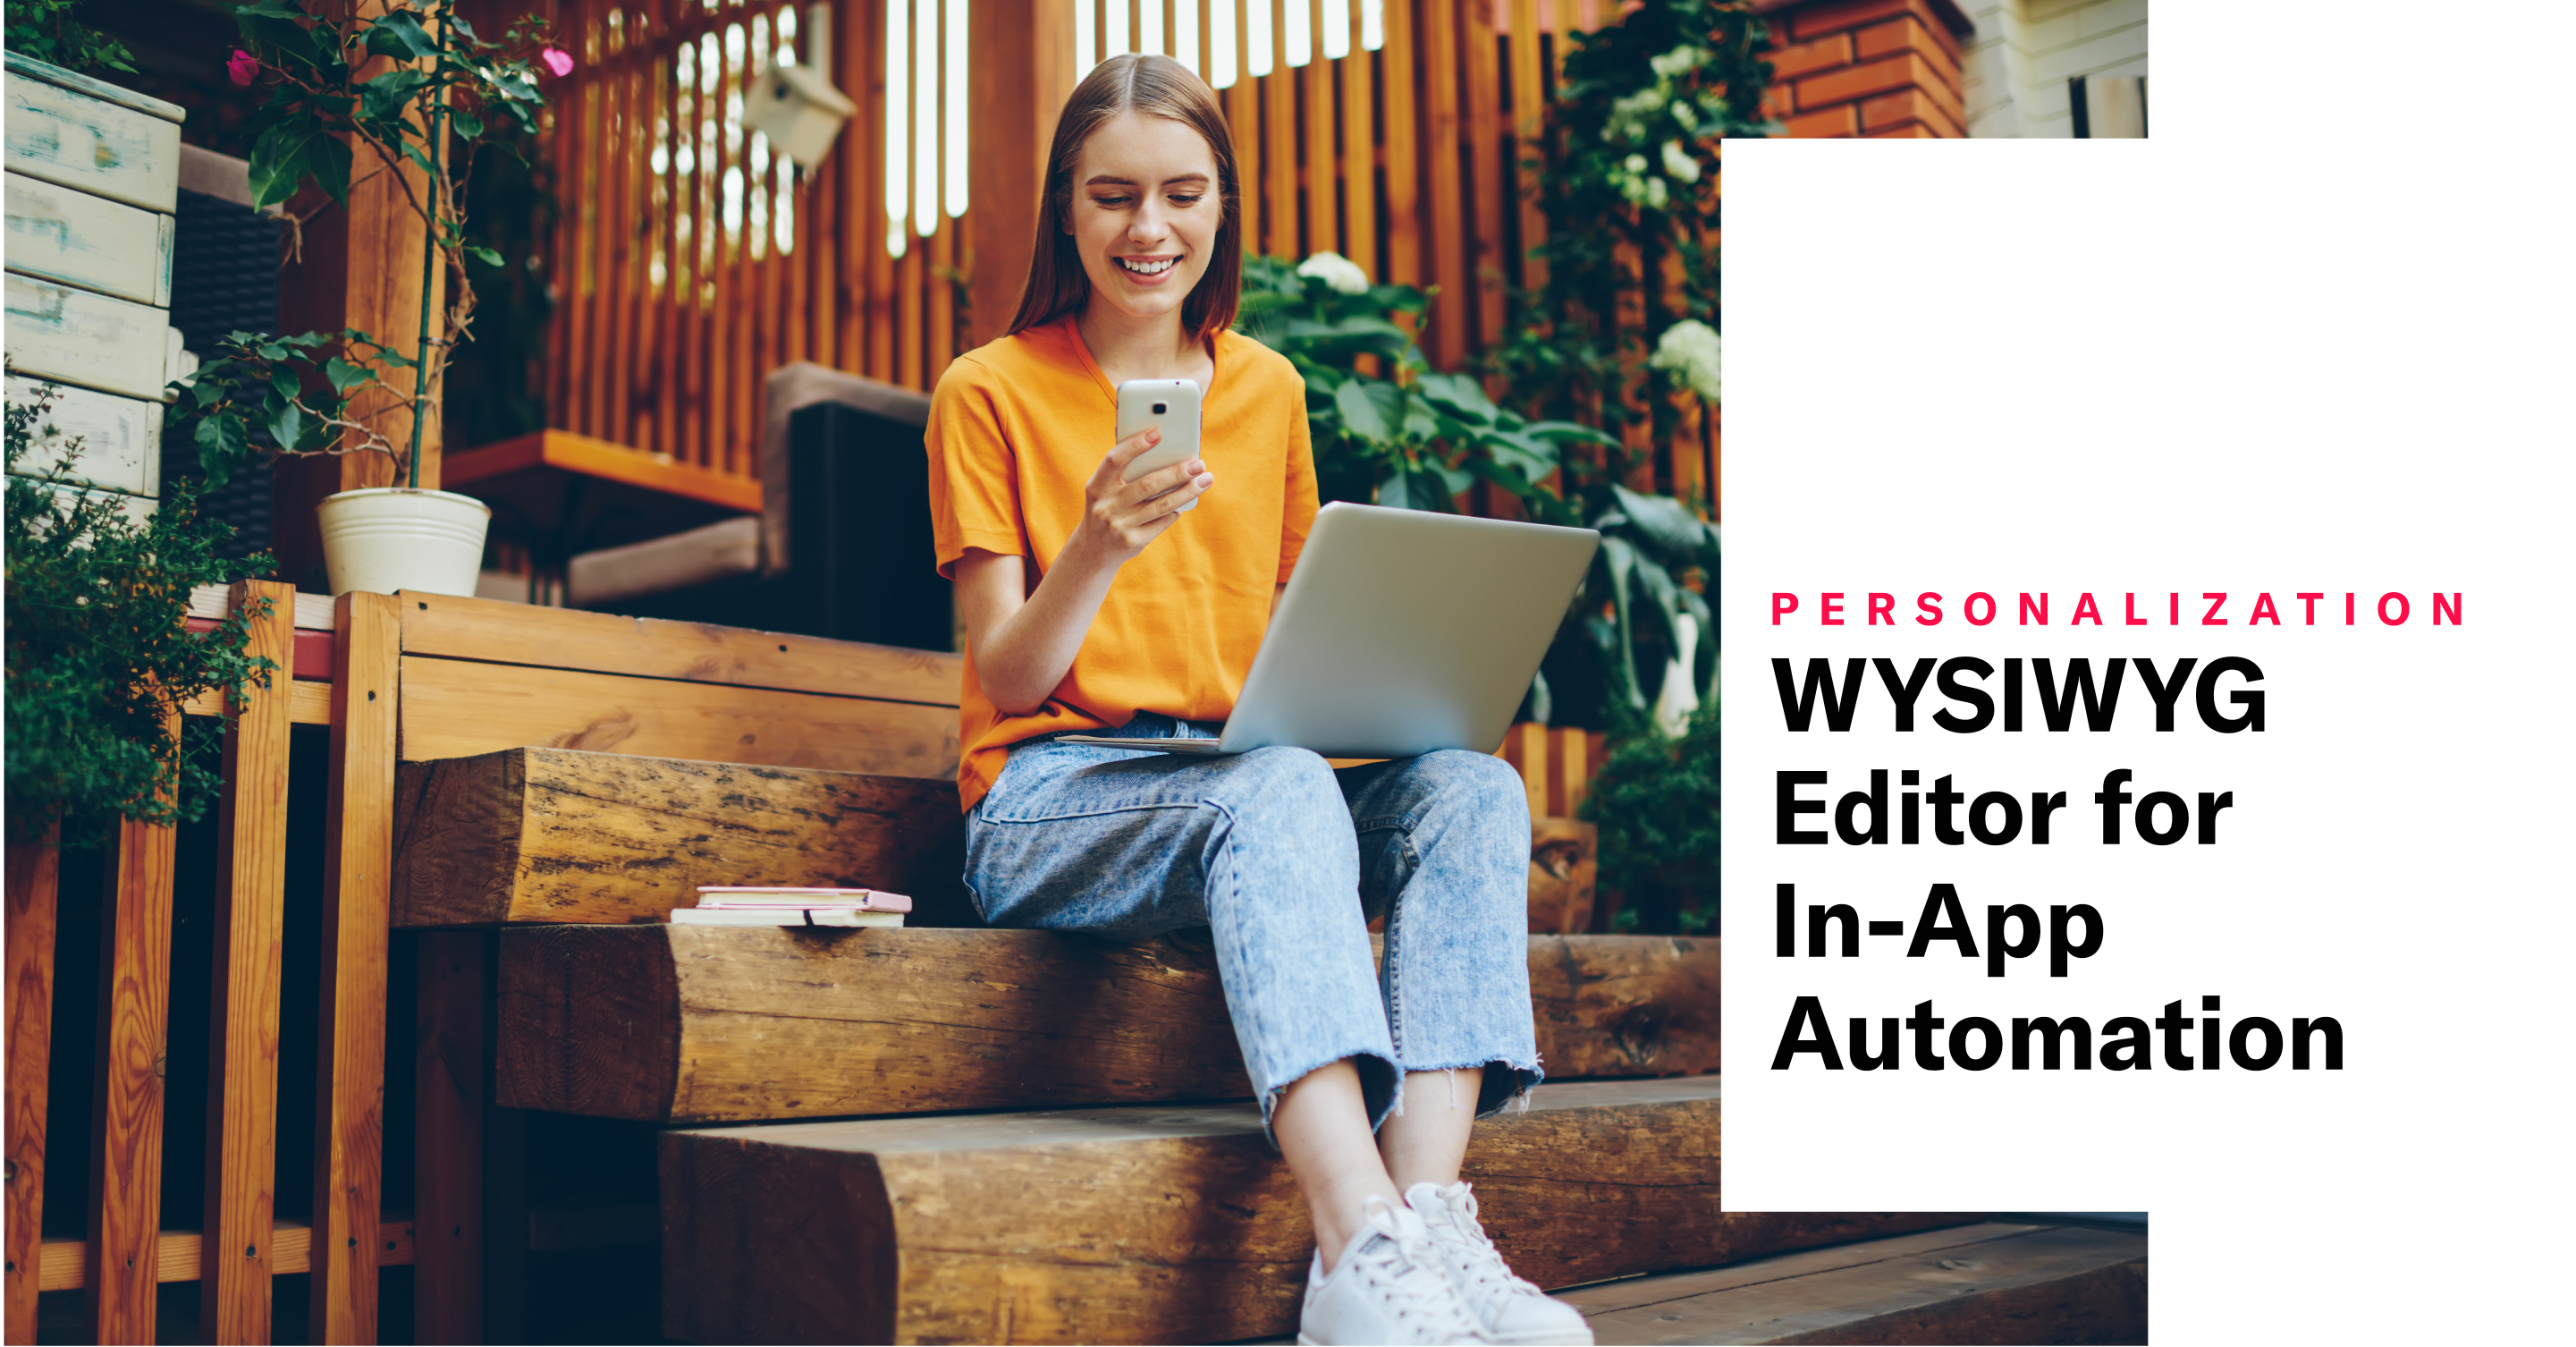 WYSIWYG Editor Support for In-App Automation